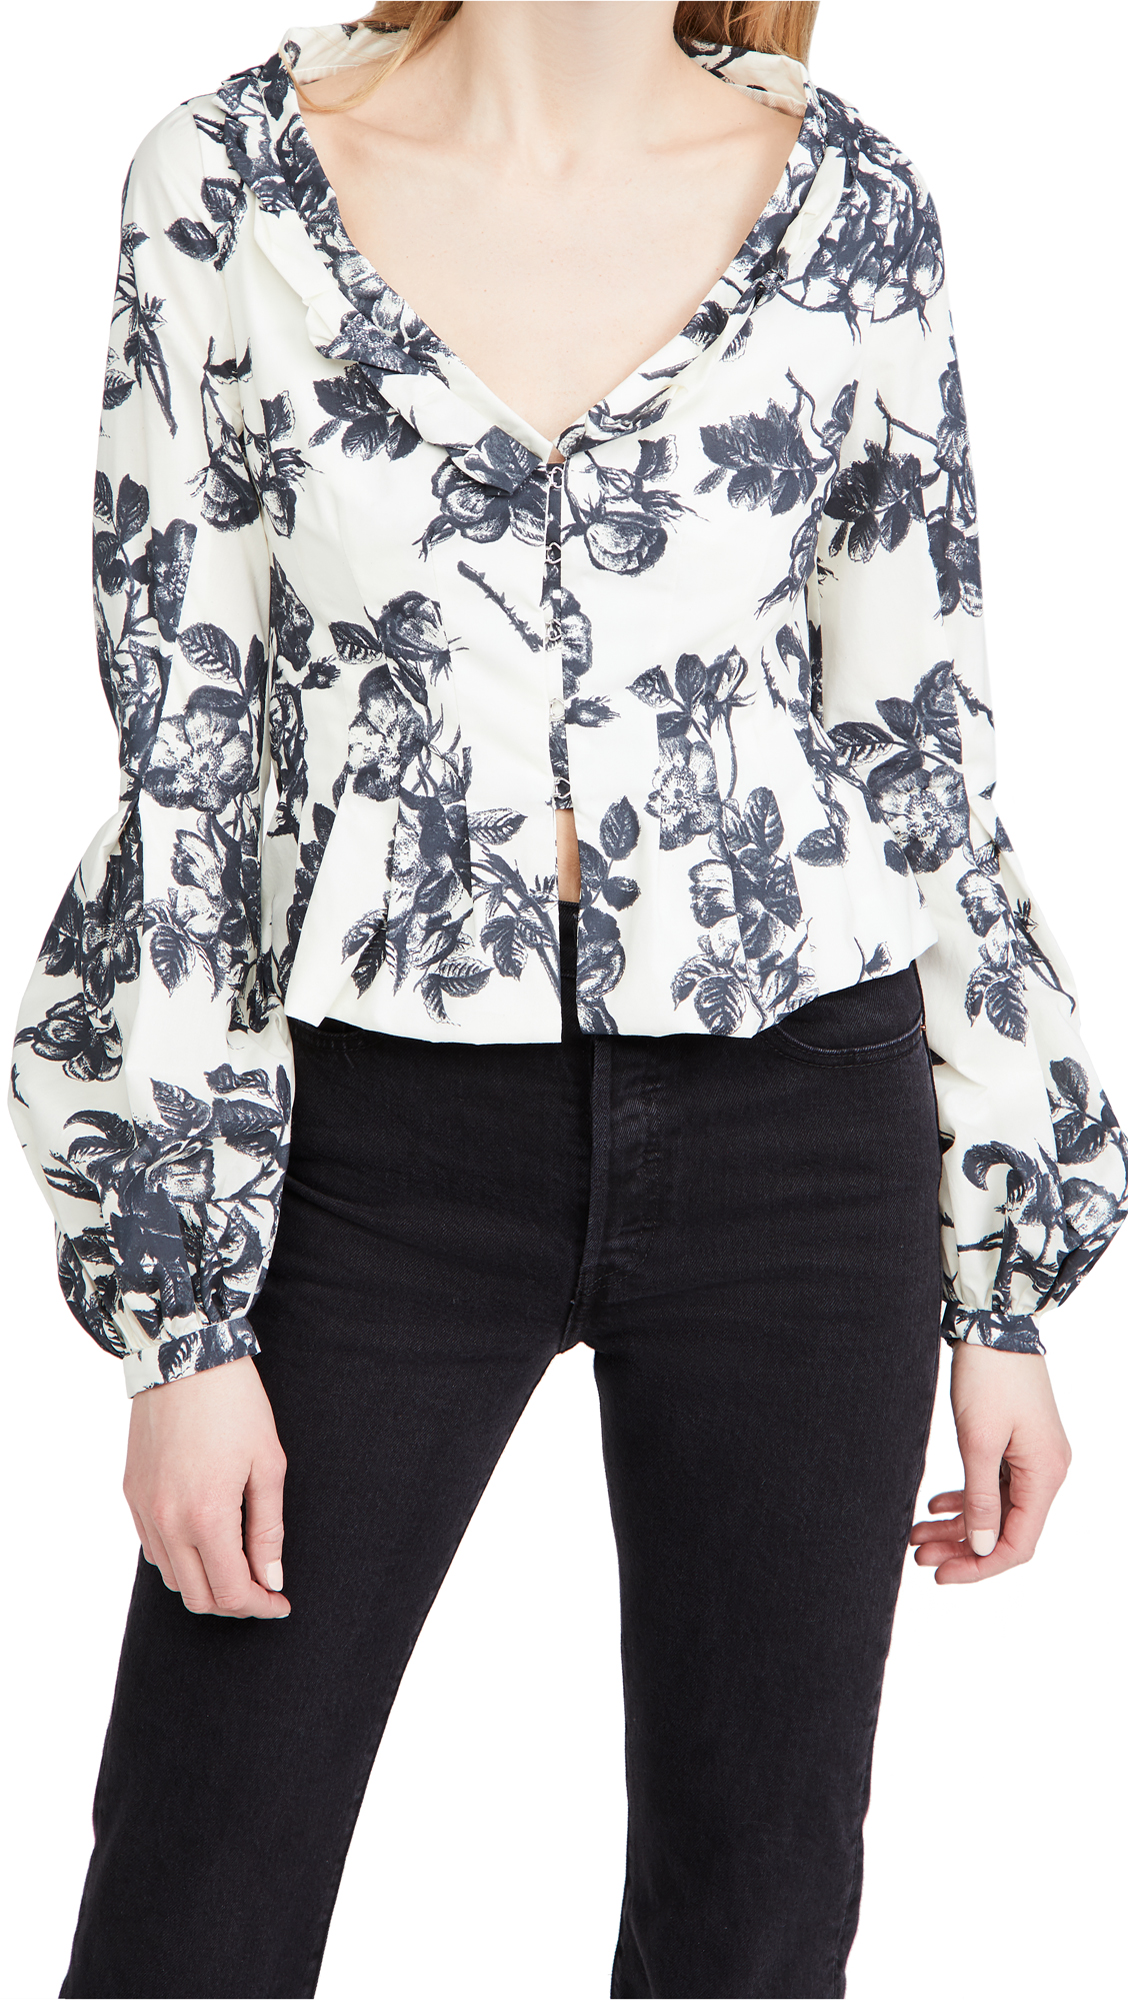 Brock Collection Sabrina Floral Cotton-blend Top In Ivory/navy